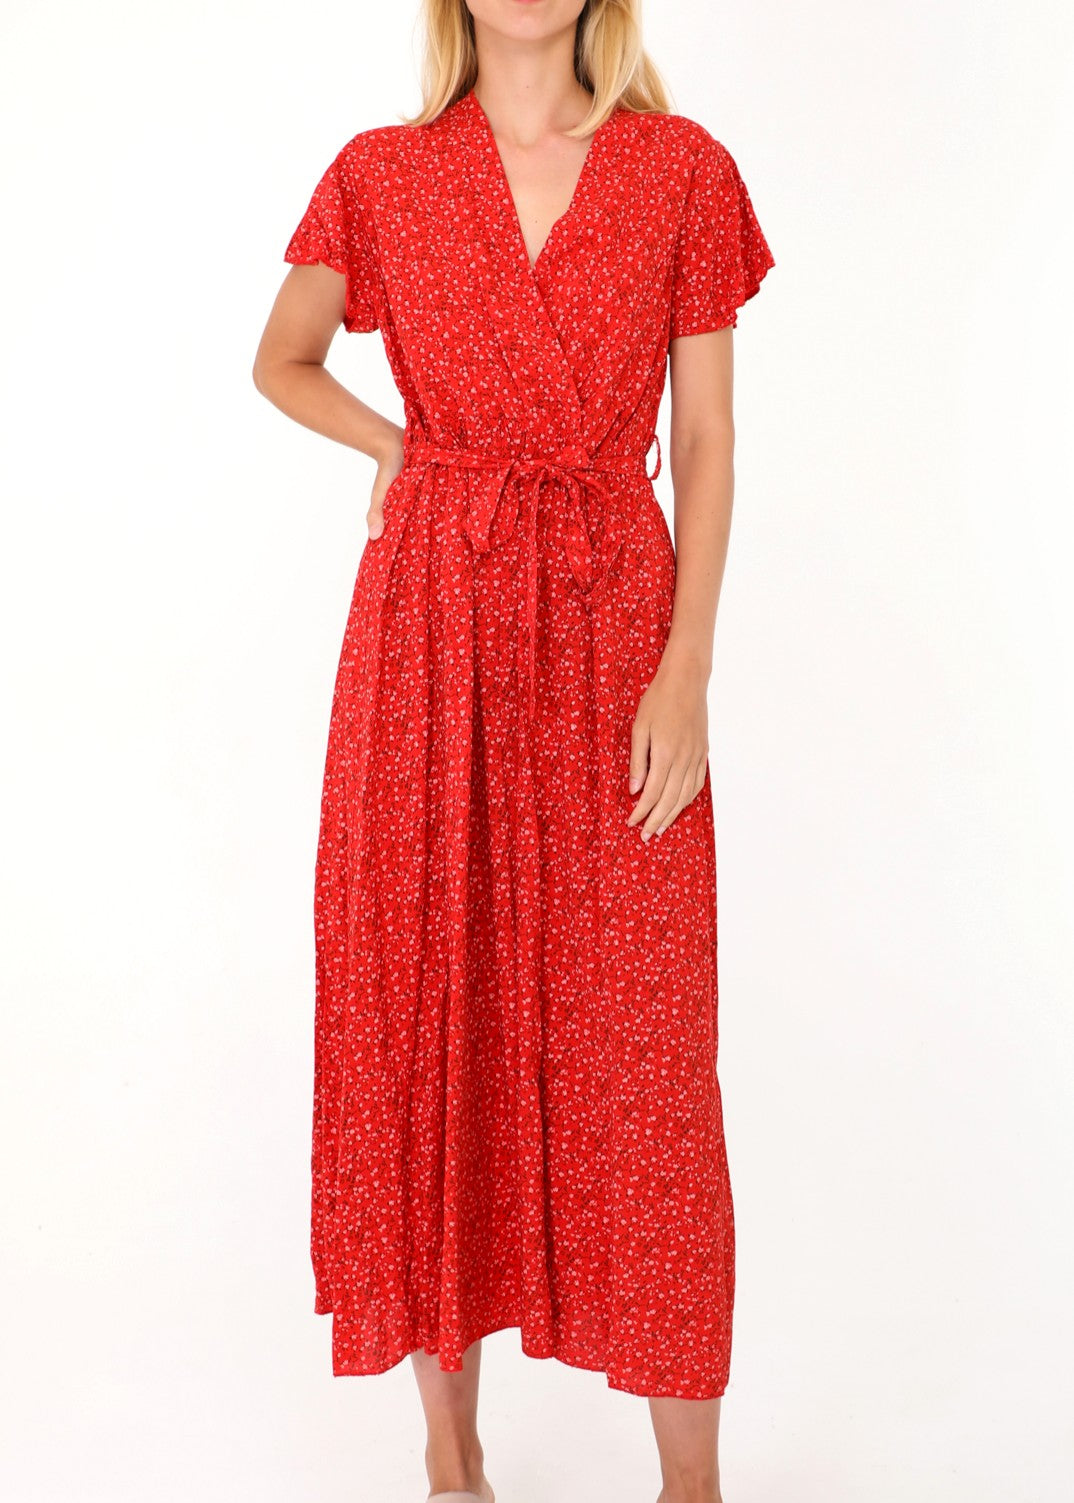 COLETTE - Floral Summer Dress - Red